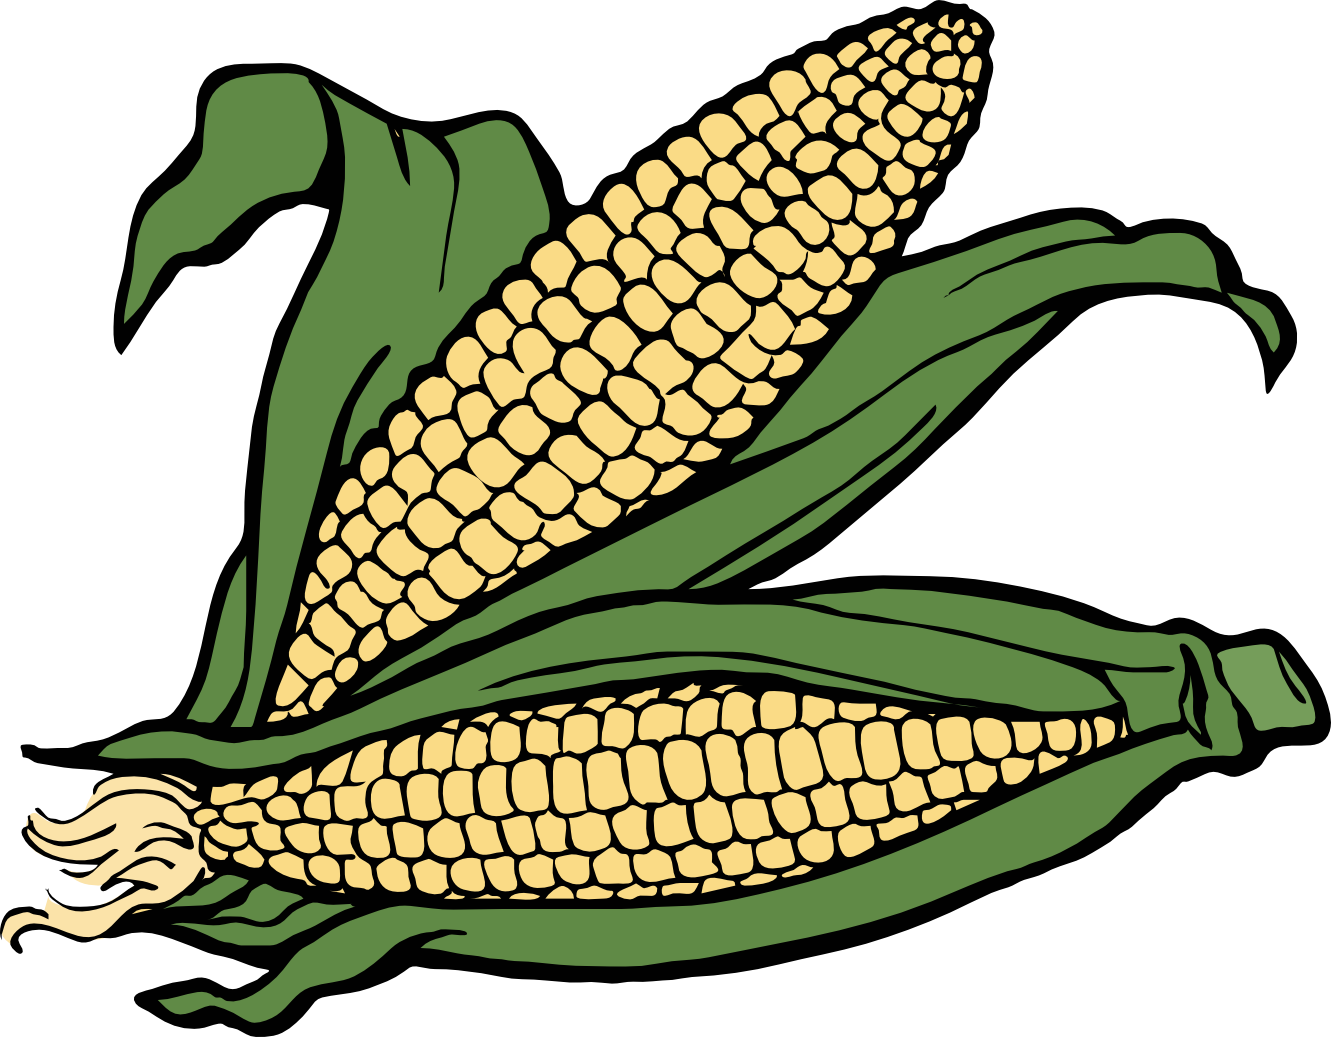 clip free library Corn clipart black and white. Plant clip art best